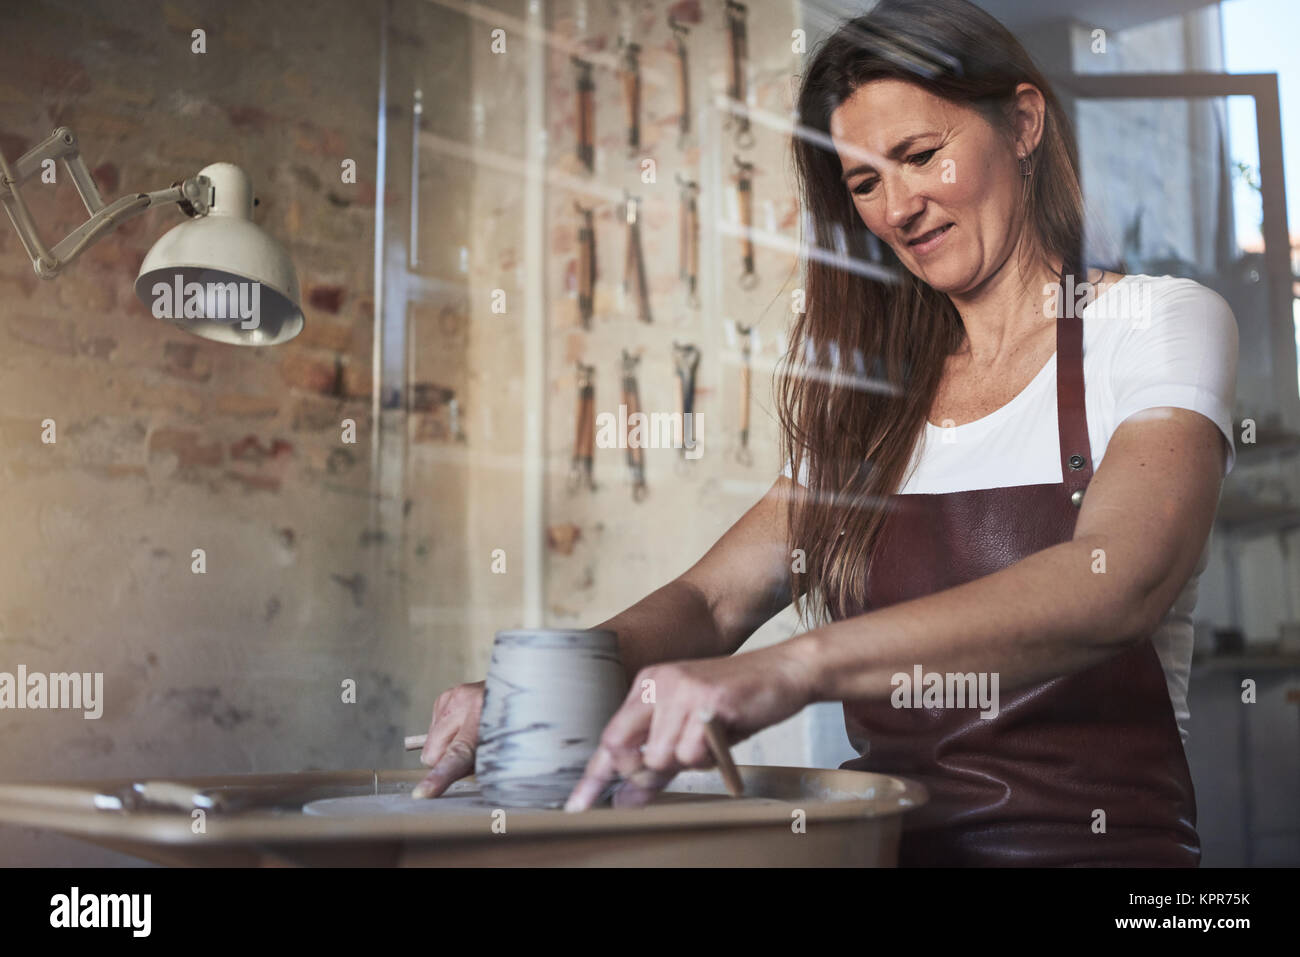 Female artisan creatively shaping a piece of clay turning on a pottery wheel while working in her ceramic studio - Stock Image